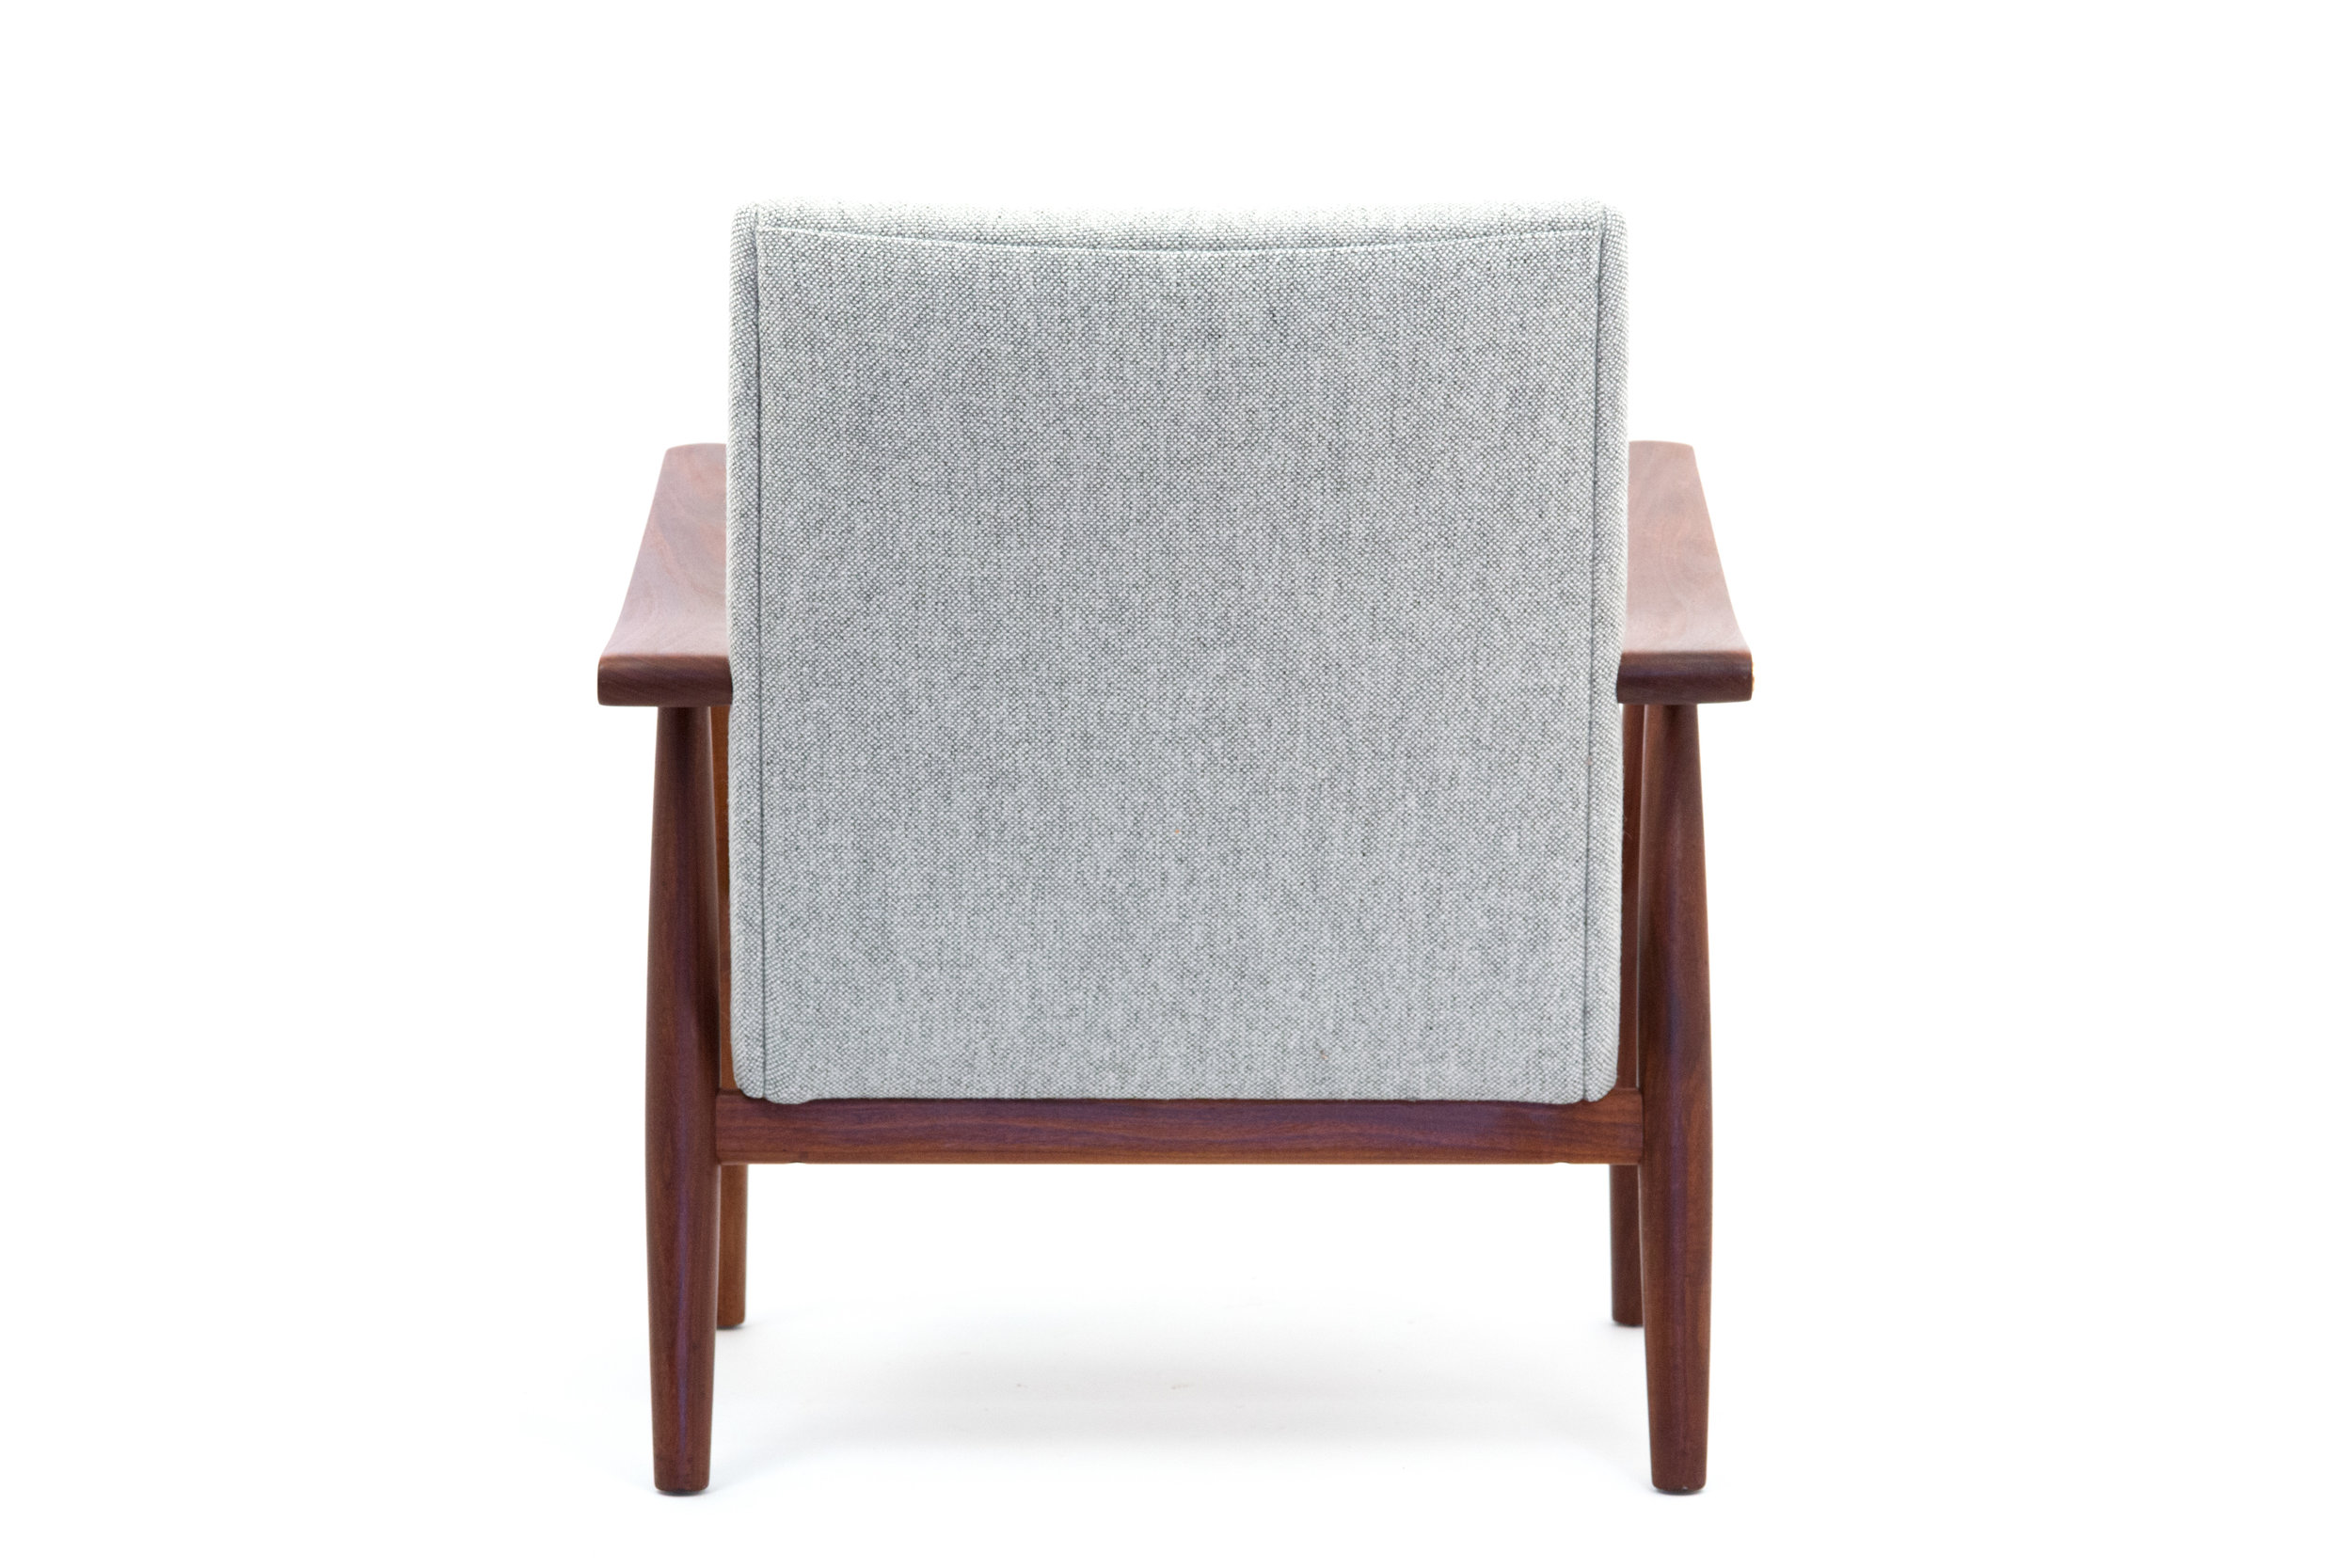 2nd Grey chair 3 copy.jpg